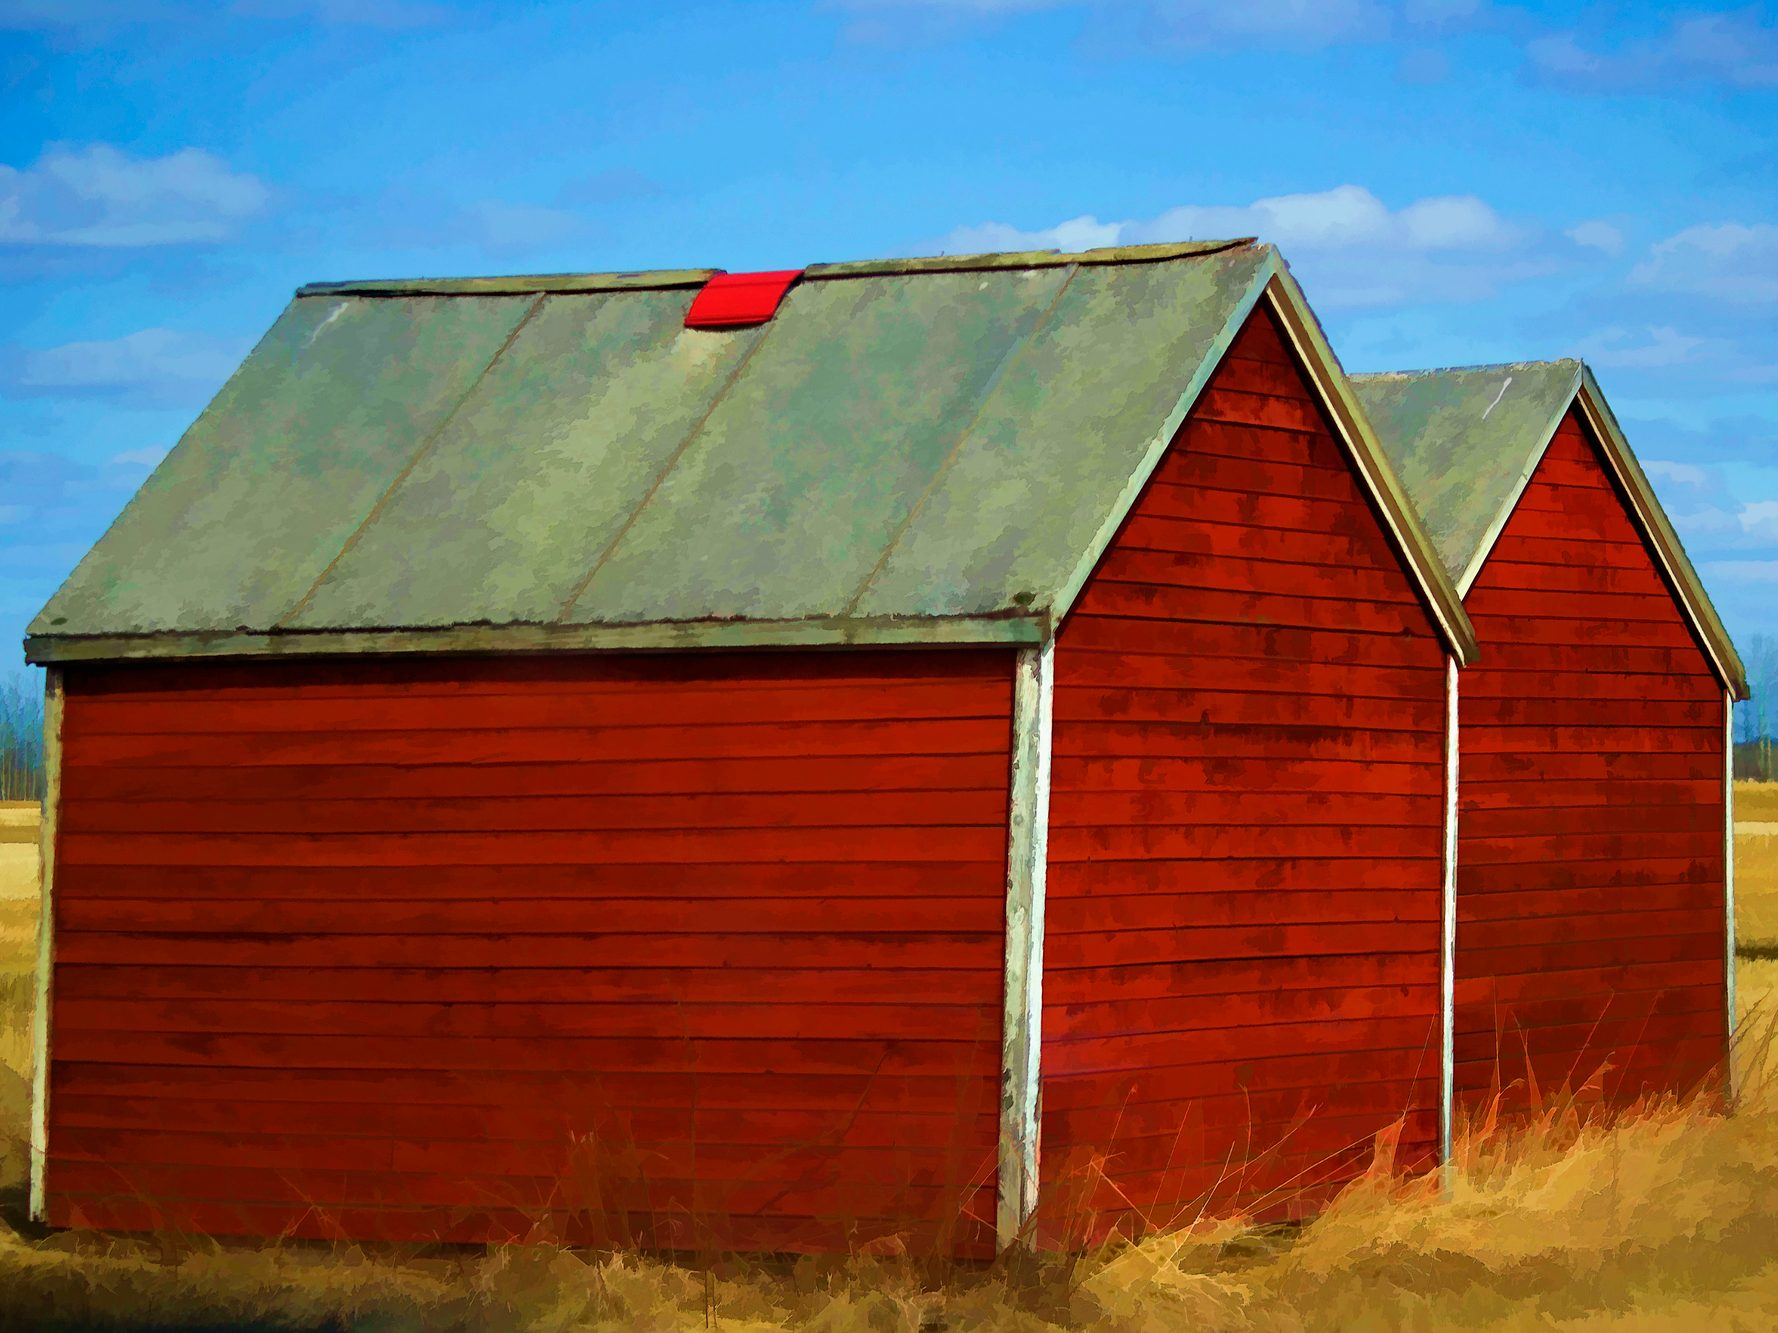 Sheds of Red